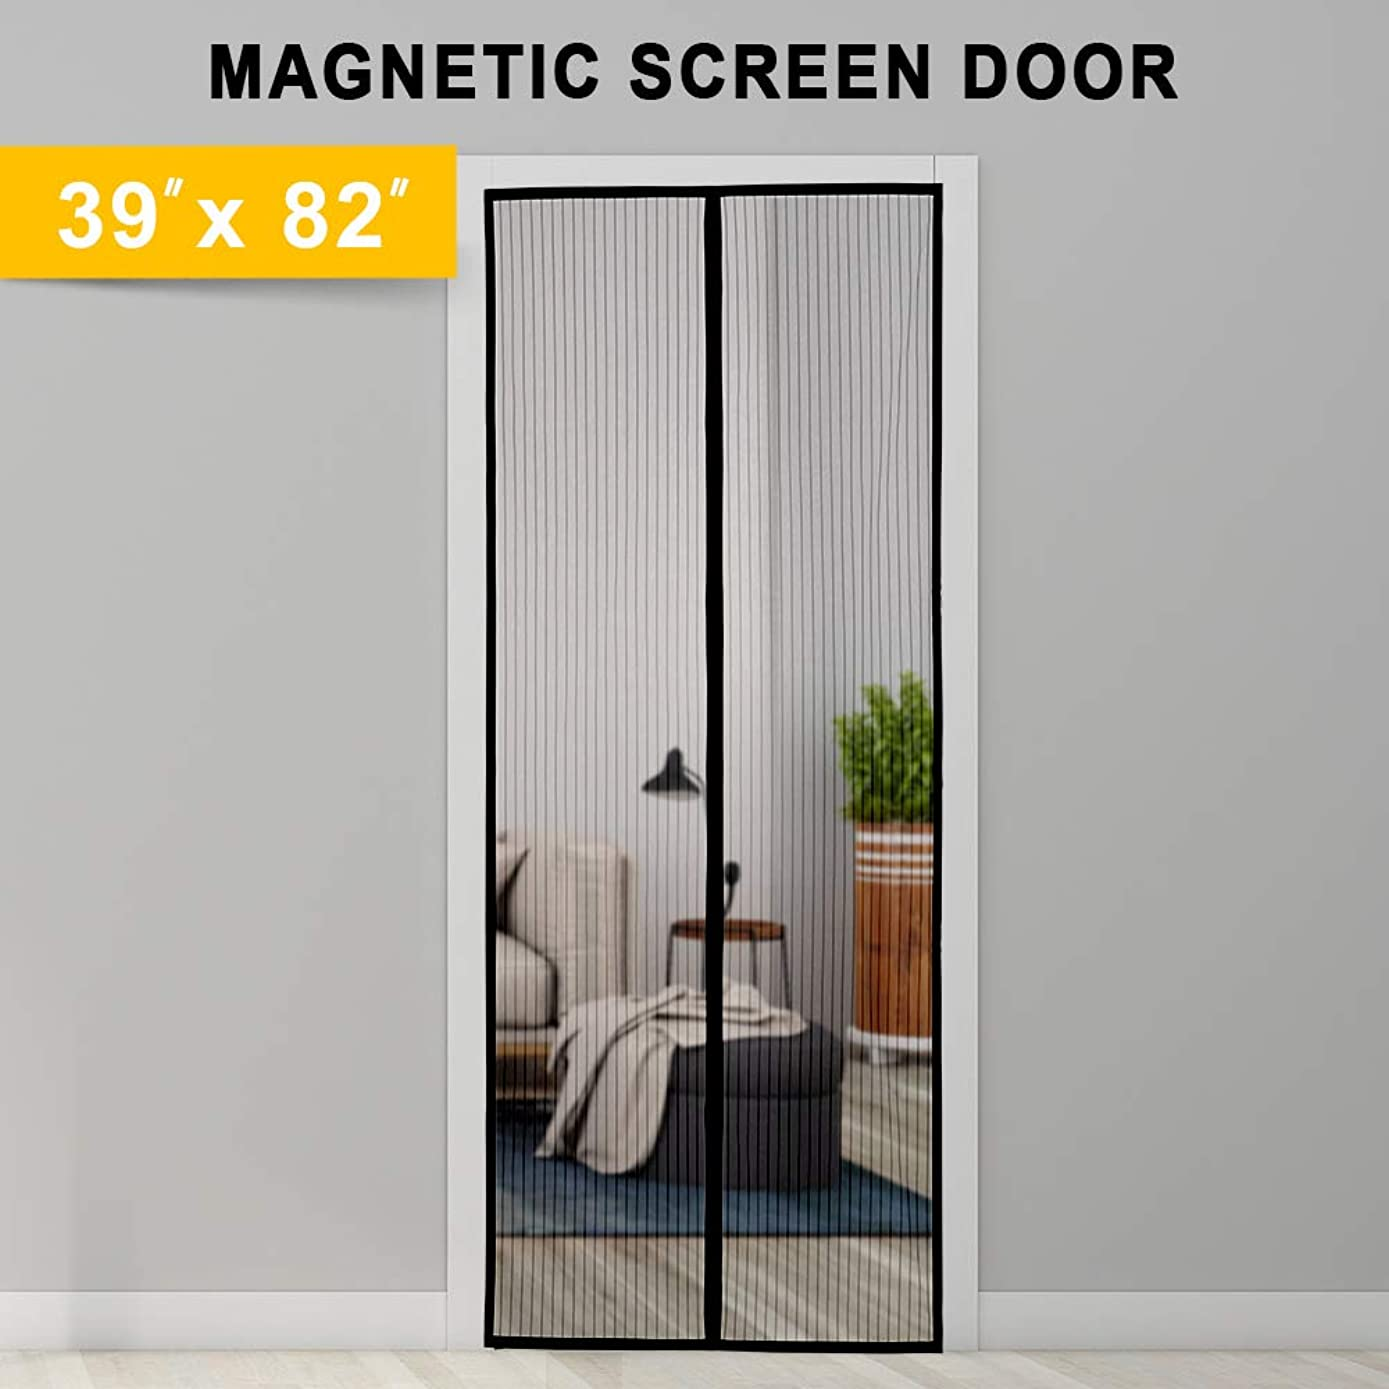 Titan Mall Magnetic Screen Door with Super Tight Self Closing Magnetic Seal and Durable Polyester Mesh, Full Frame Mounting Tape, Fits 39